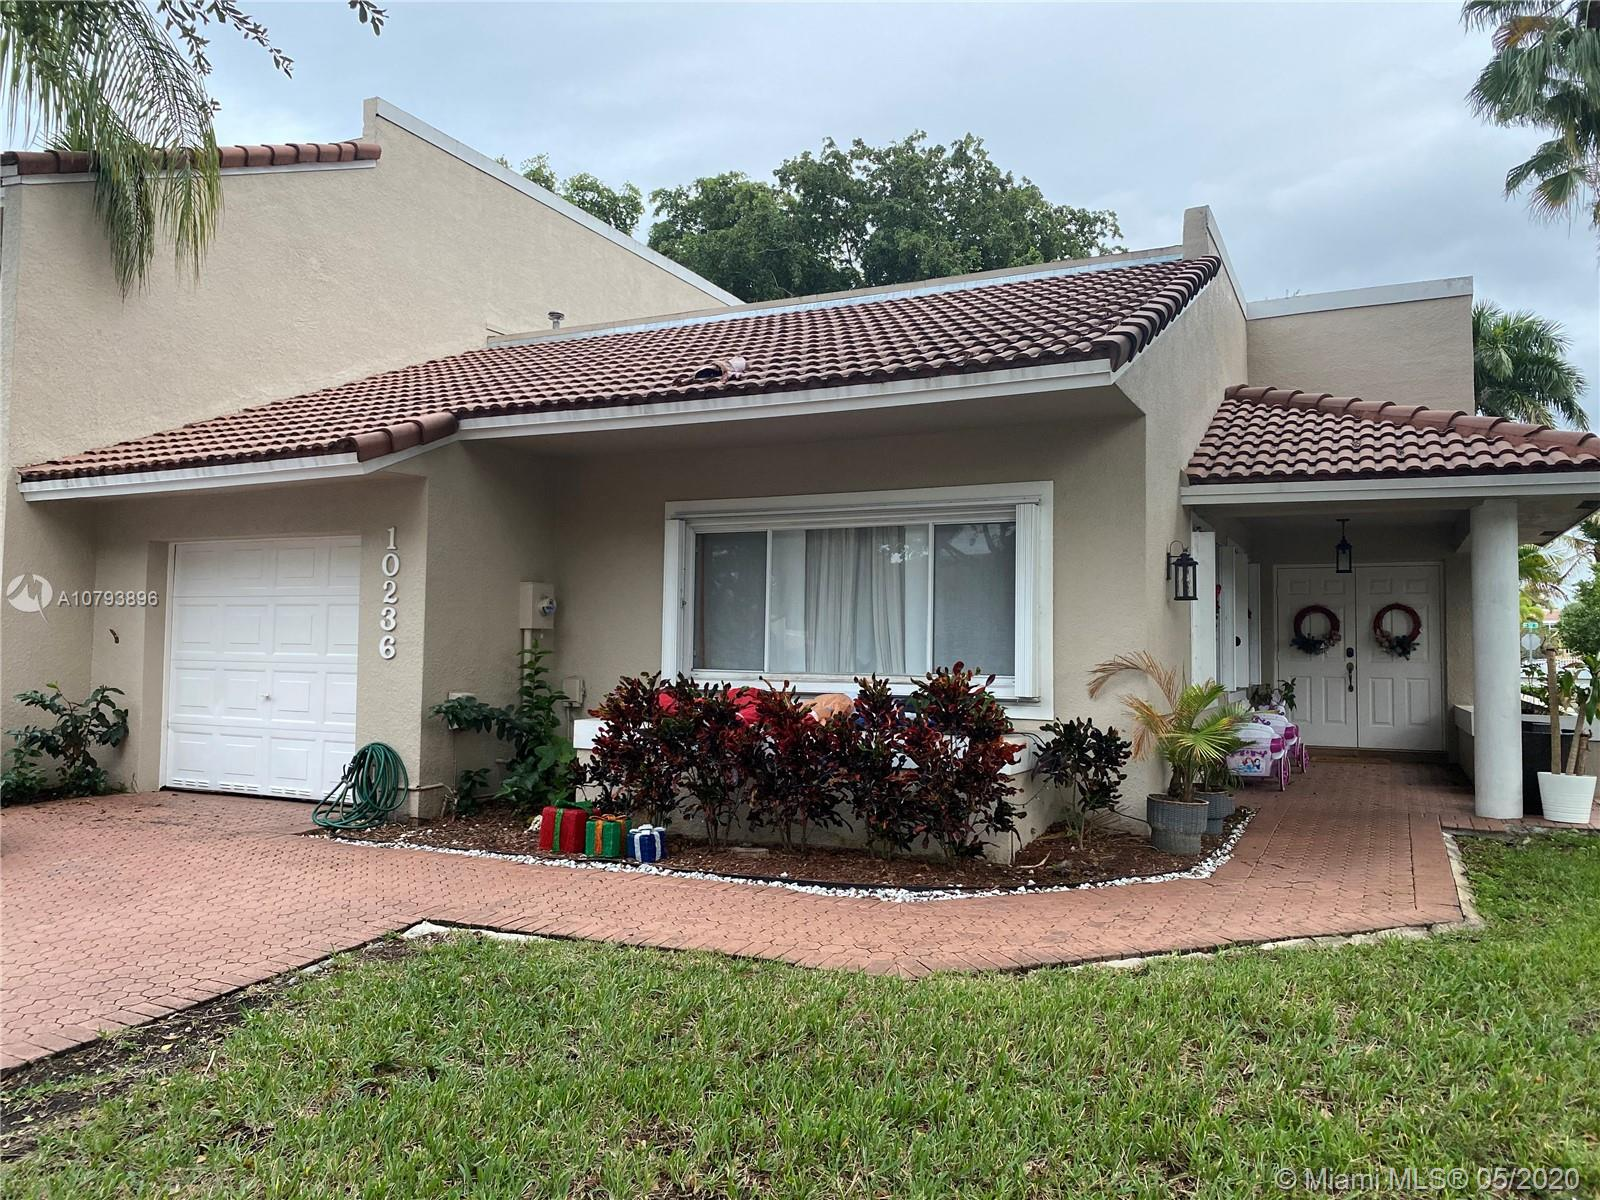 10236 NW 52nd Ter, Doral in Miami-dade County County, FL 33178 Home for Sale